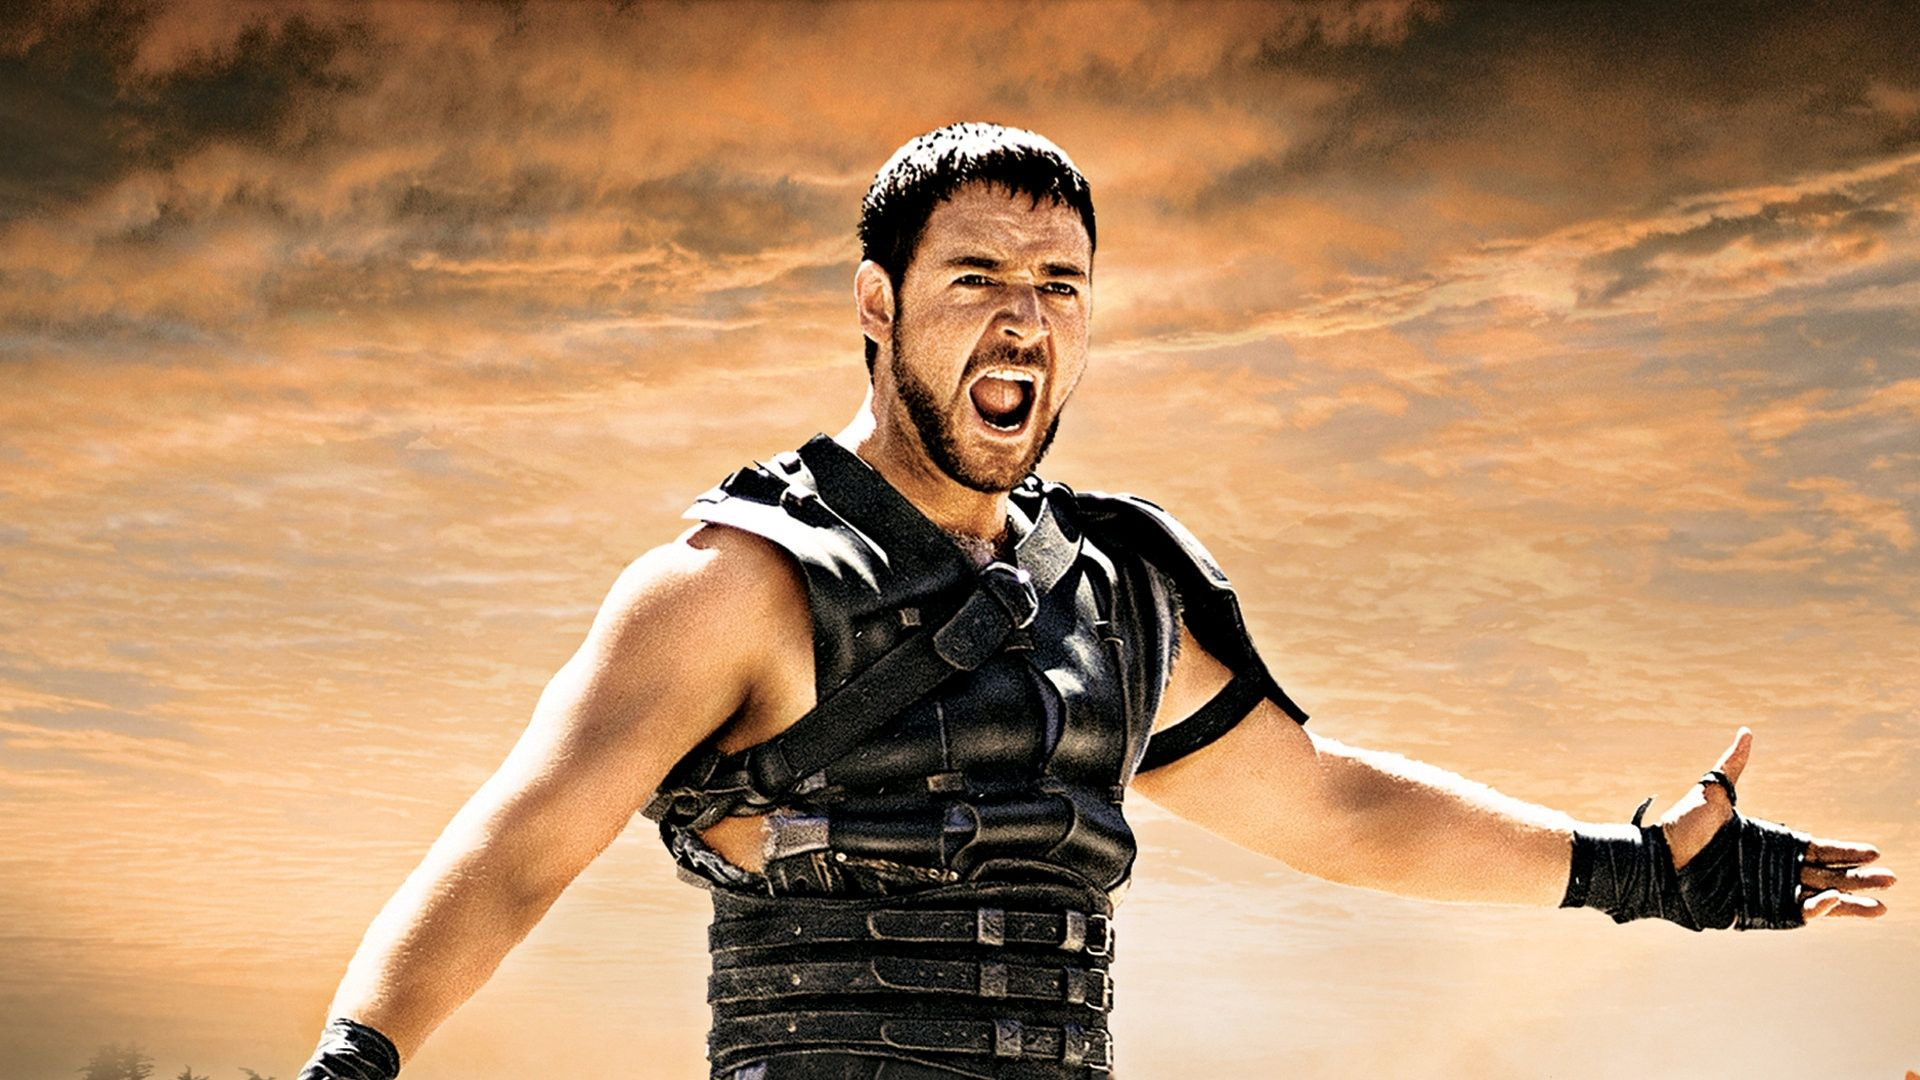 Download Wallpapers 1920x1080 Gladiator, Russell crowe, Maximus